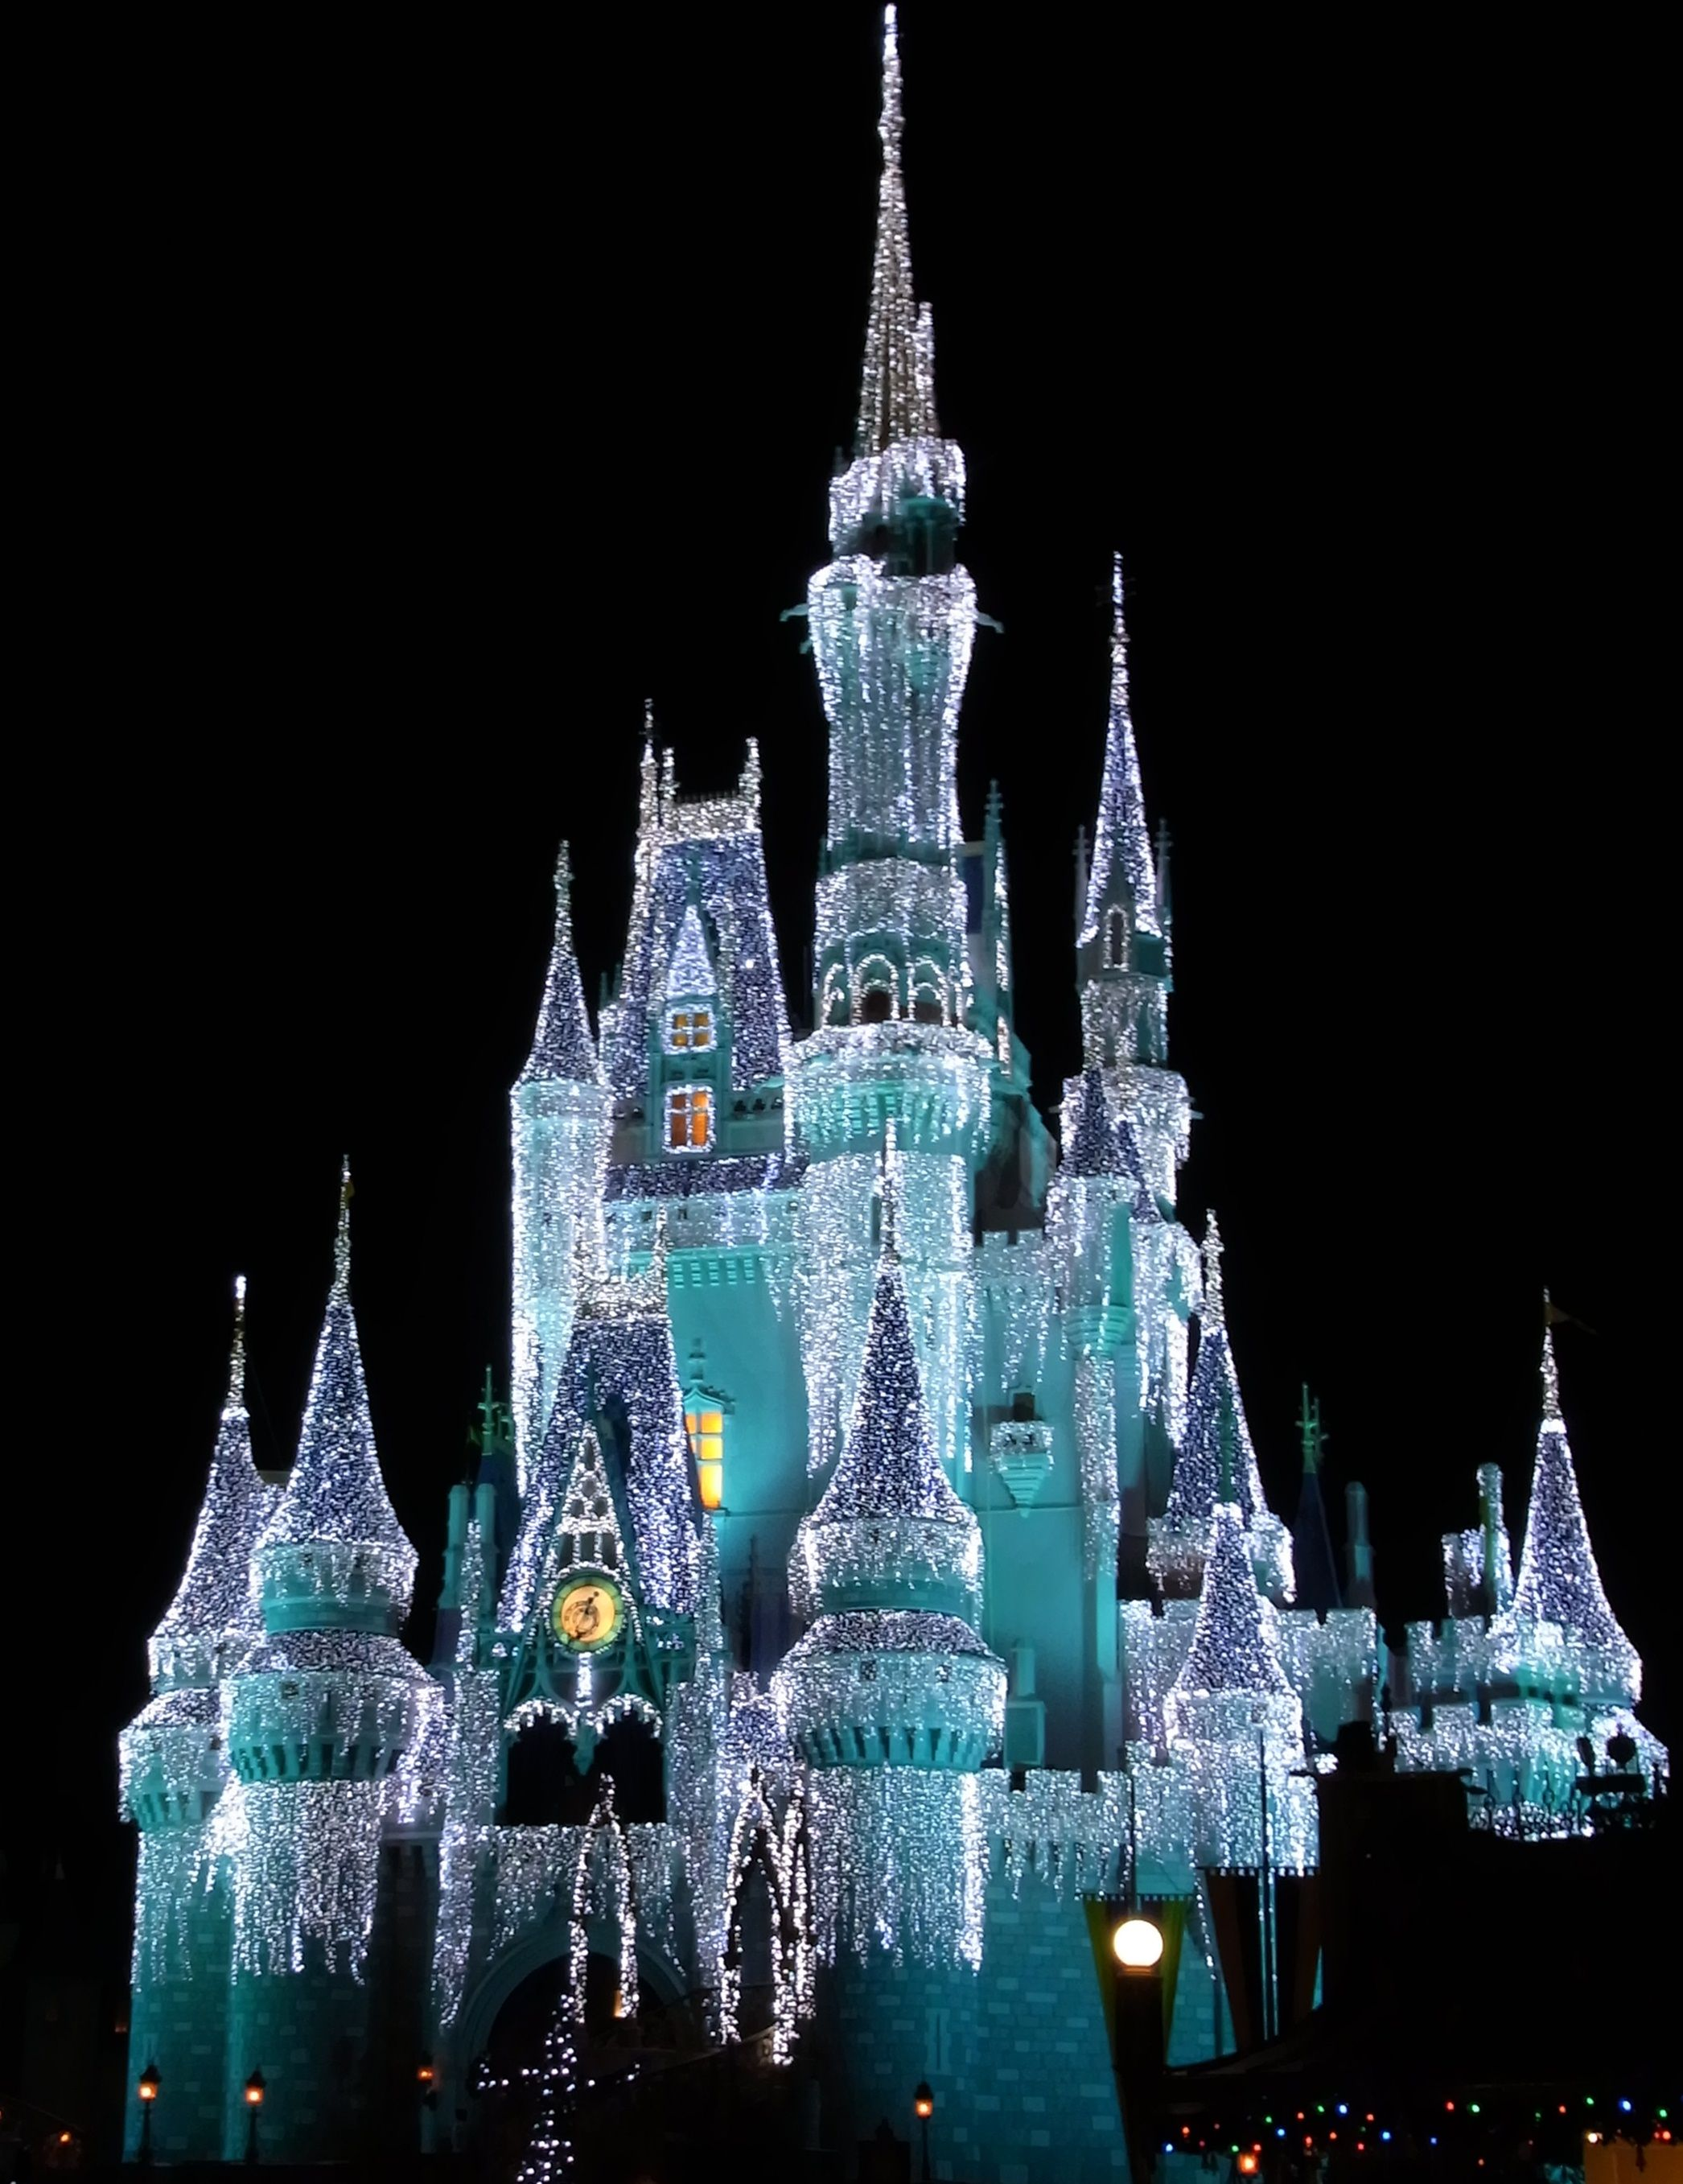 Disney World in Florida, USA